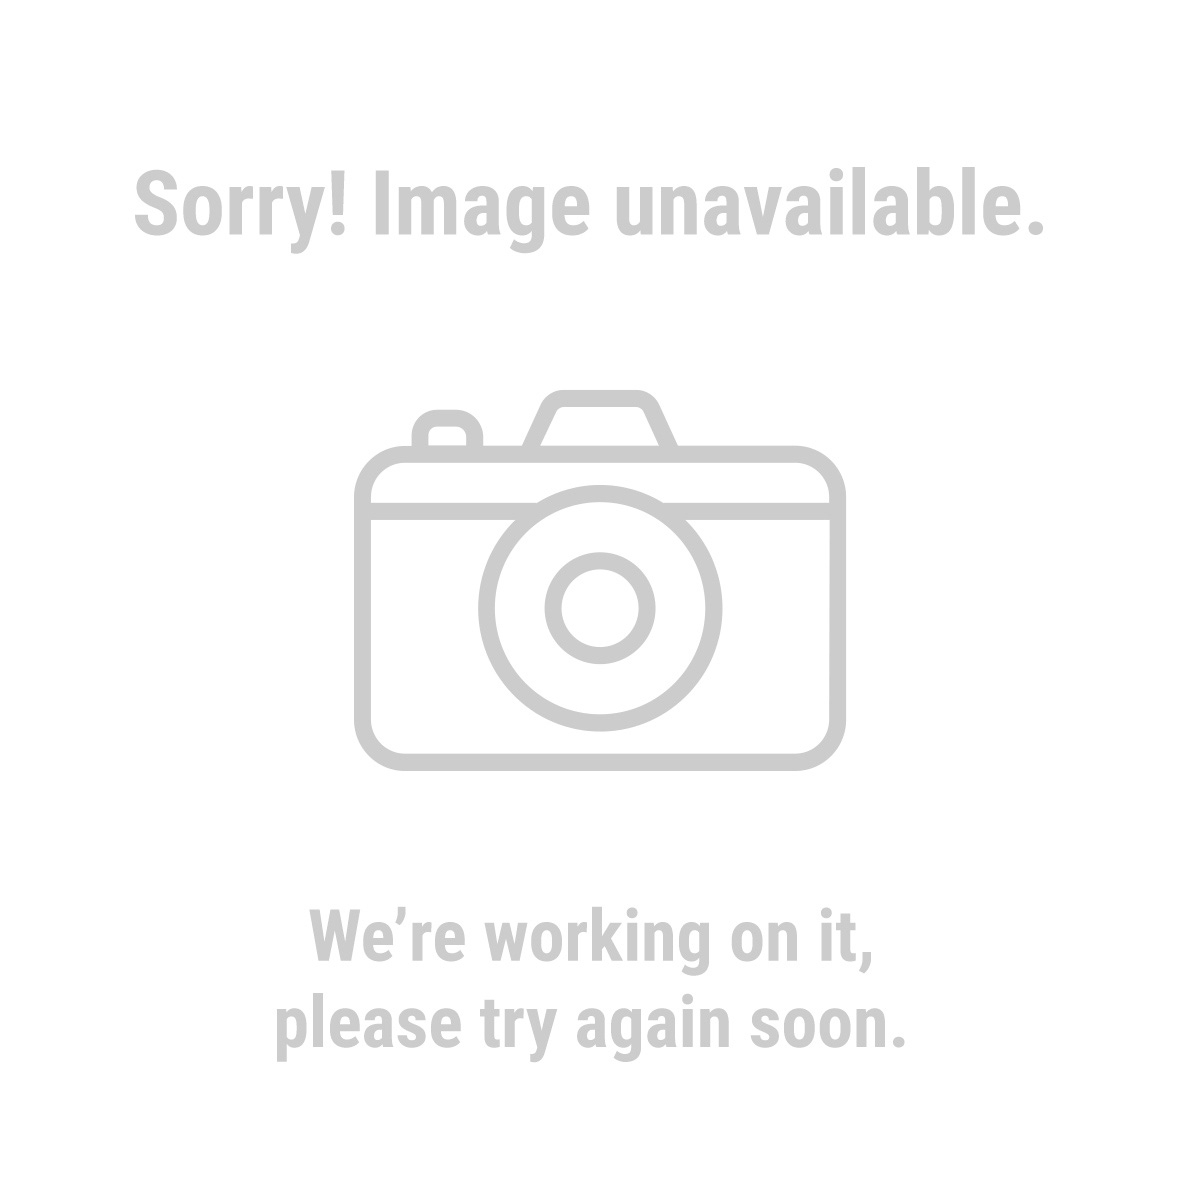 Central Pneumatic 60612 33 oz. Household Low Volume, Low Pressure Spray Gun